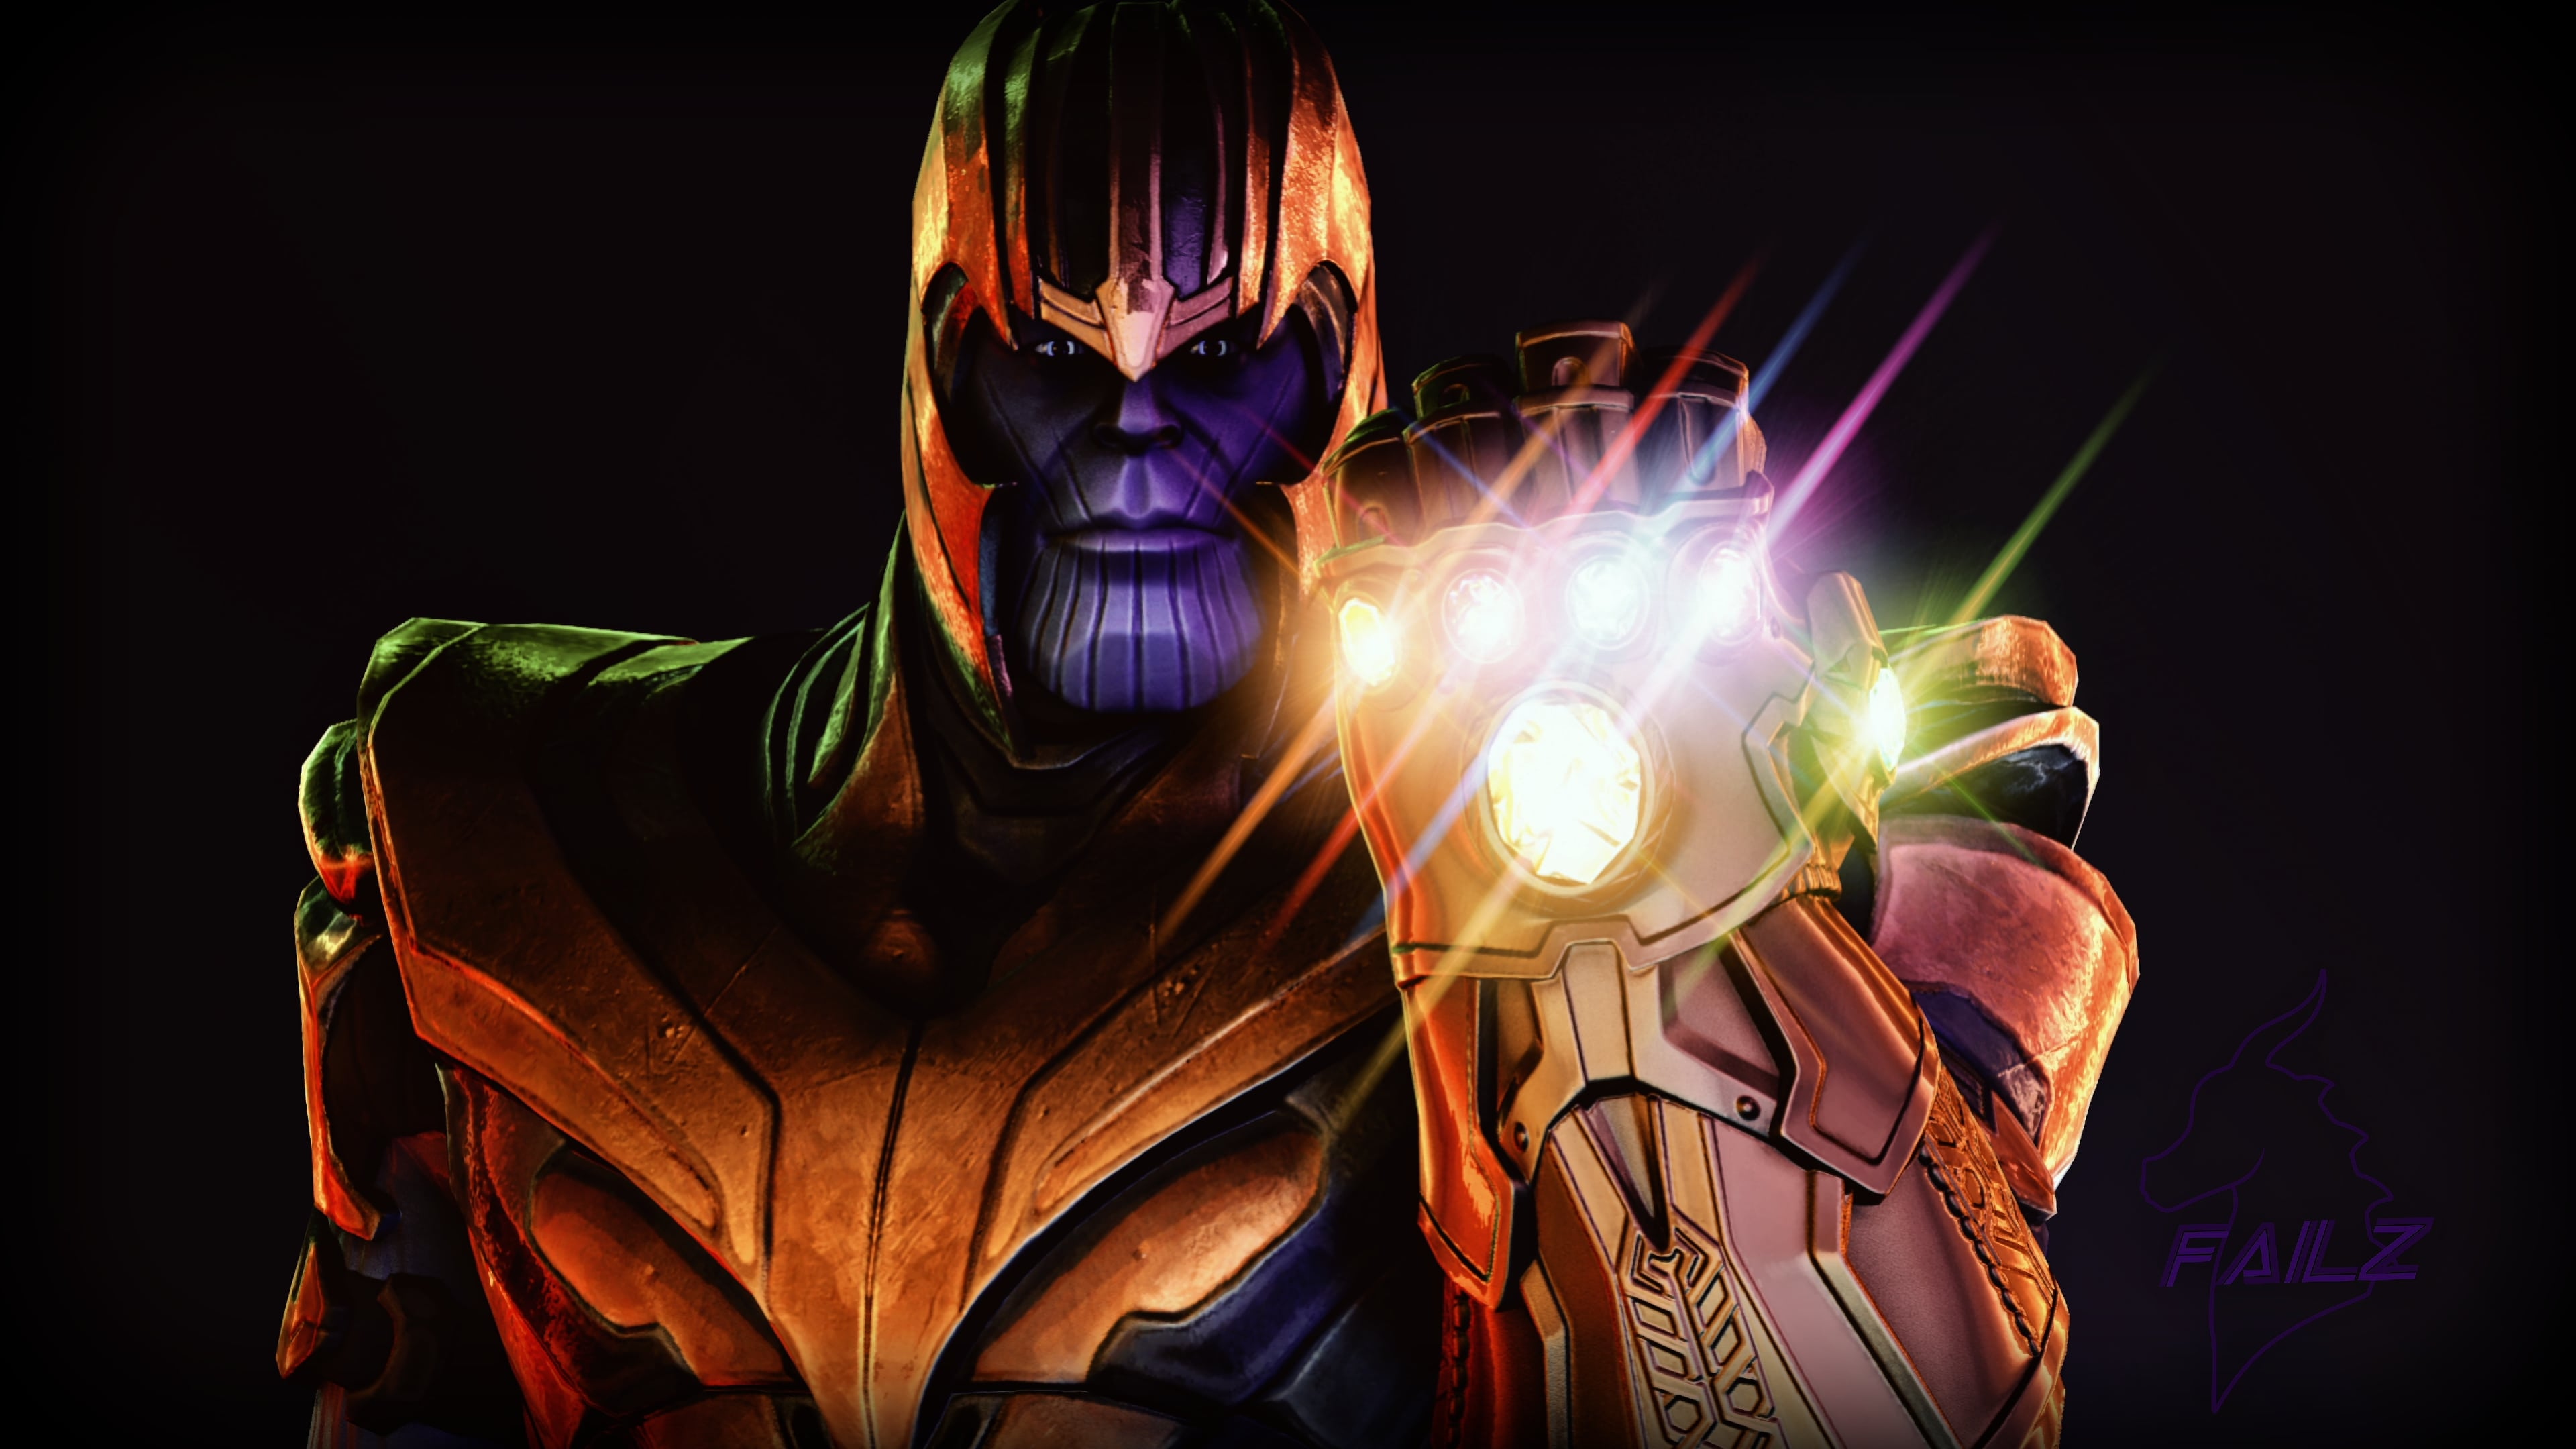 Thanos Infinity Gauntlet Fortnite Battle Royale 4076 Wallpapers 3840x2160